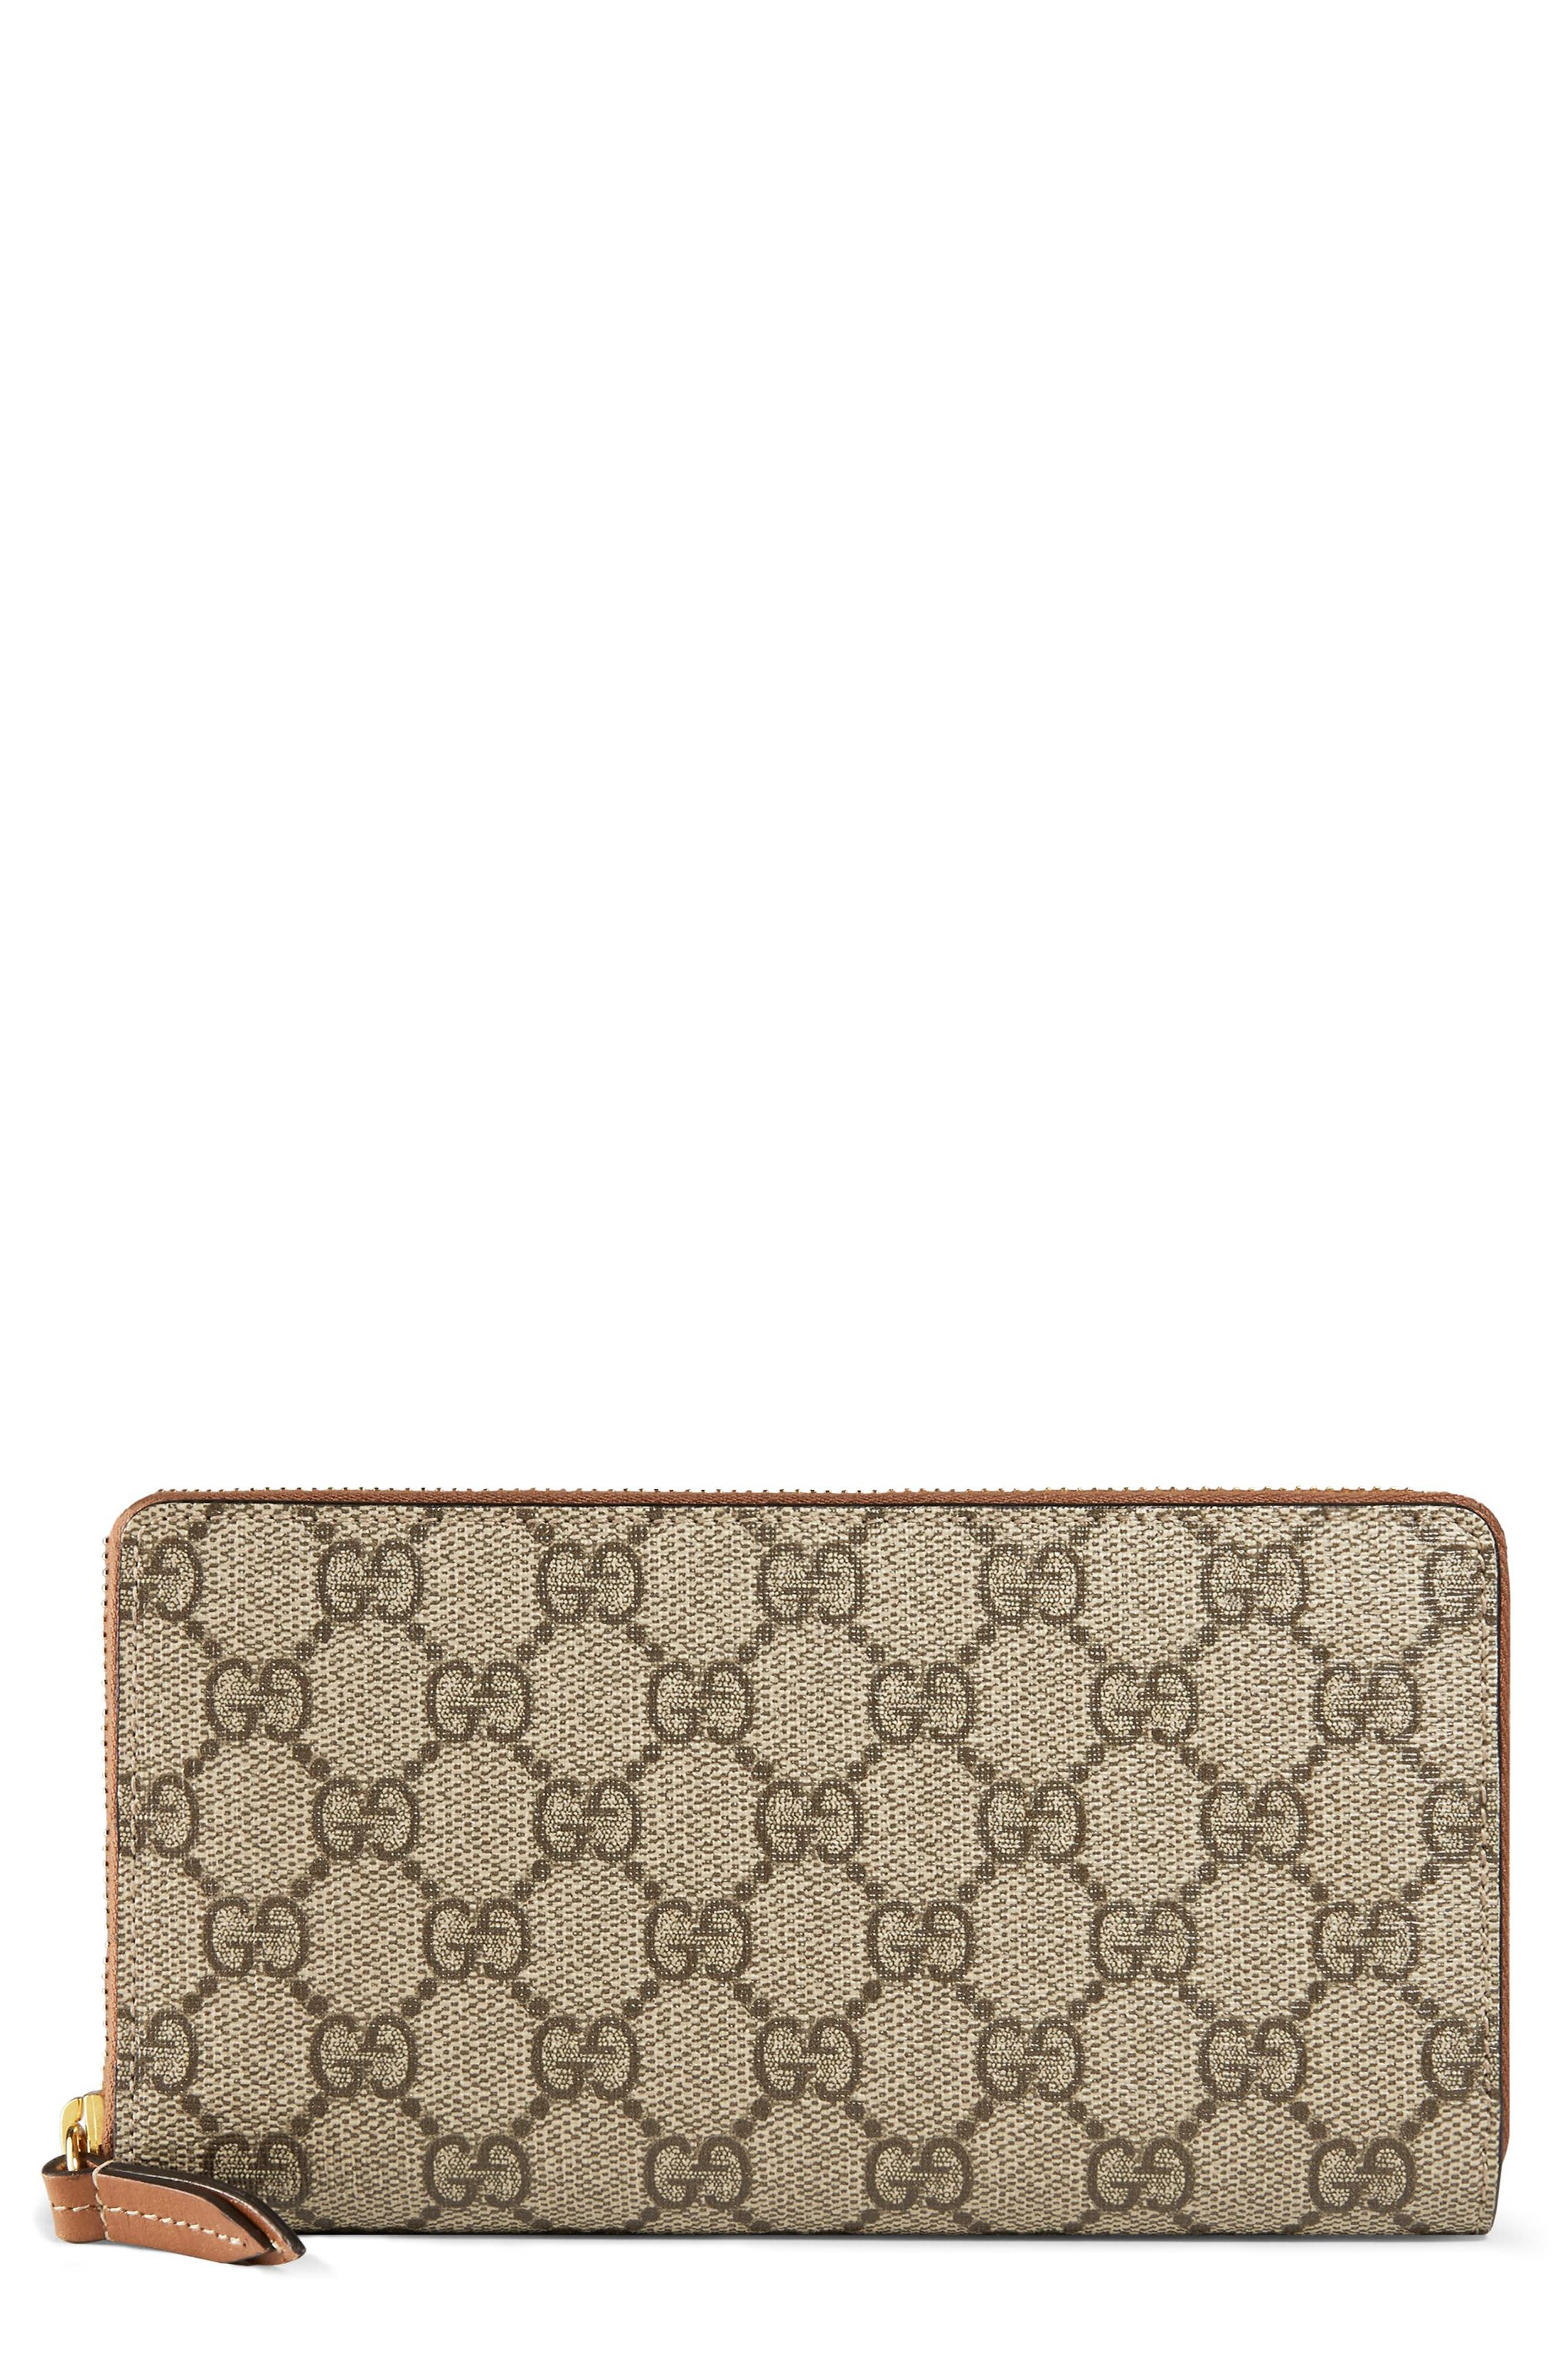 GG Supreme Zip Around Canvas Wallet,                             Main thumbnail 1, color,                             BEIGE/EBONY/CUIR